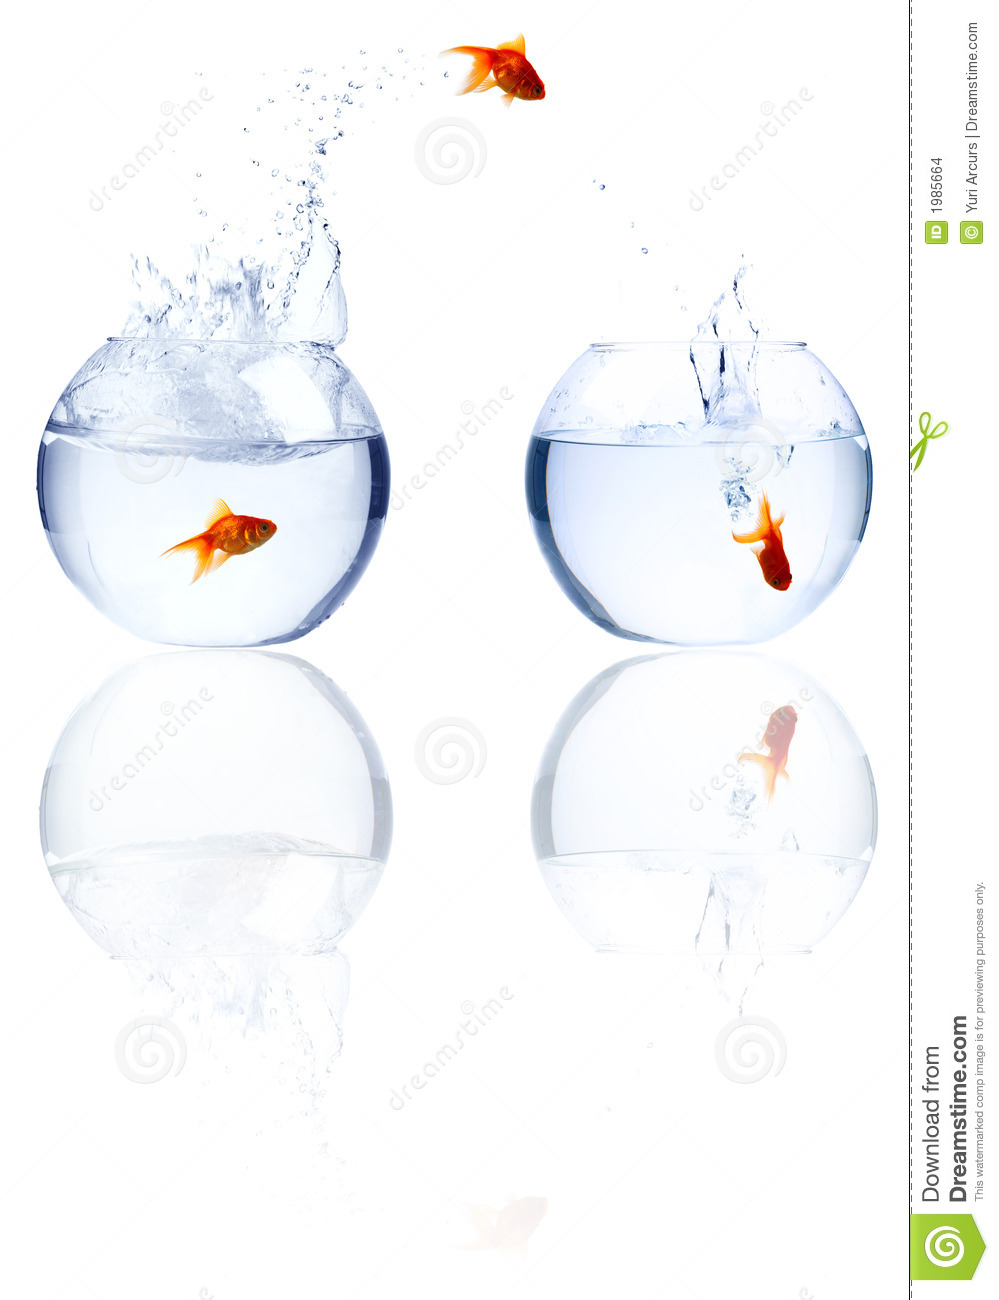 Stock images fish jumping out of water image 1985664 for Dream about fish out of water